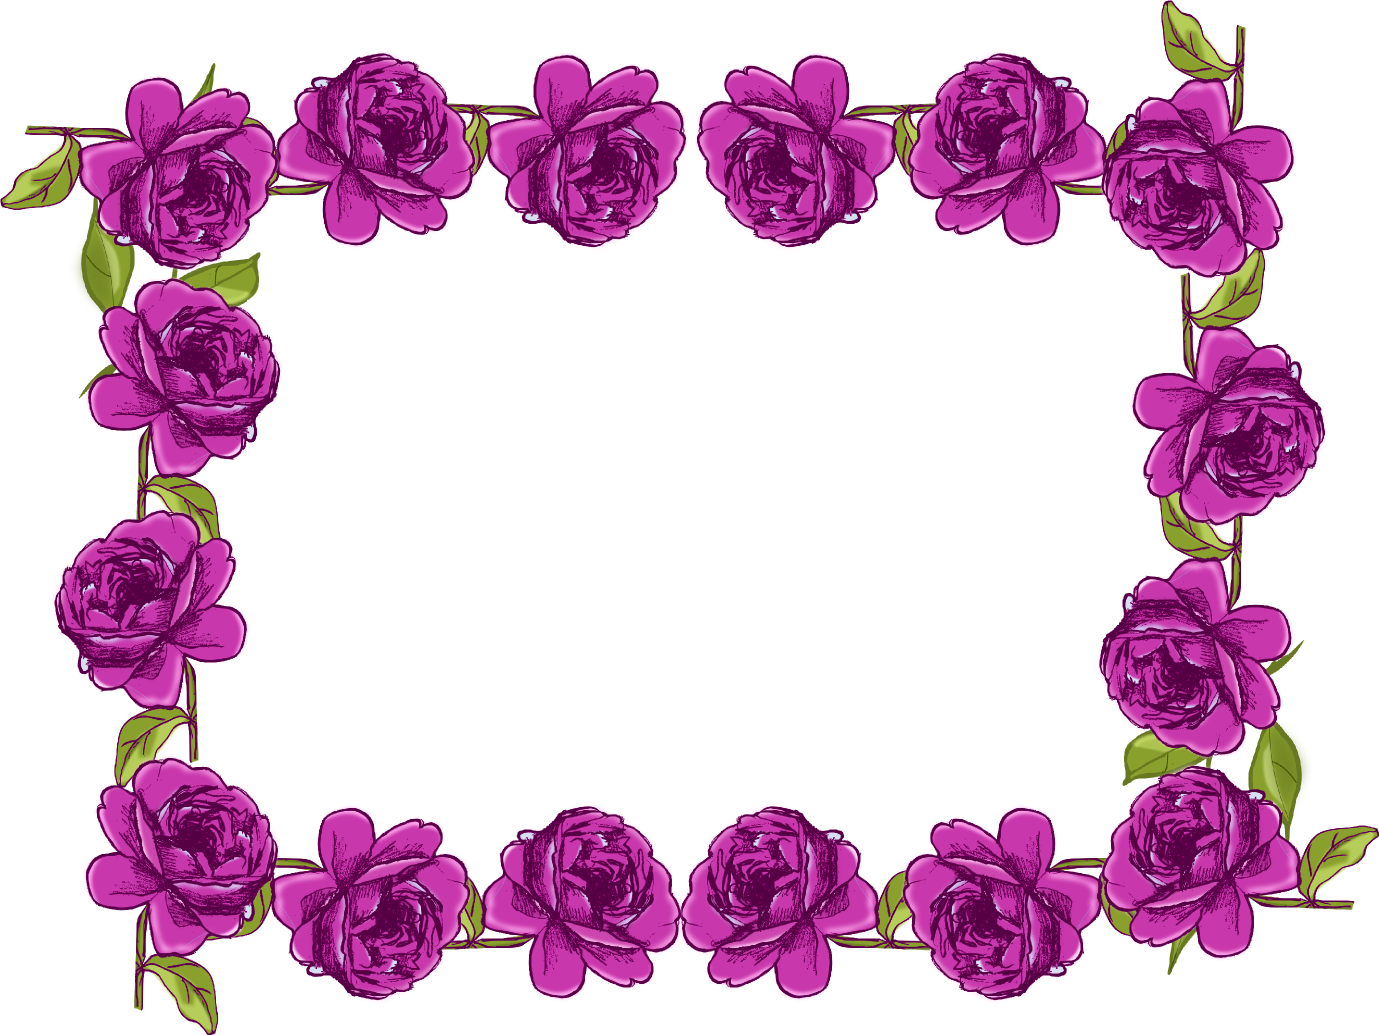 Free digital purple rose frame and border in vintage ...